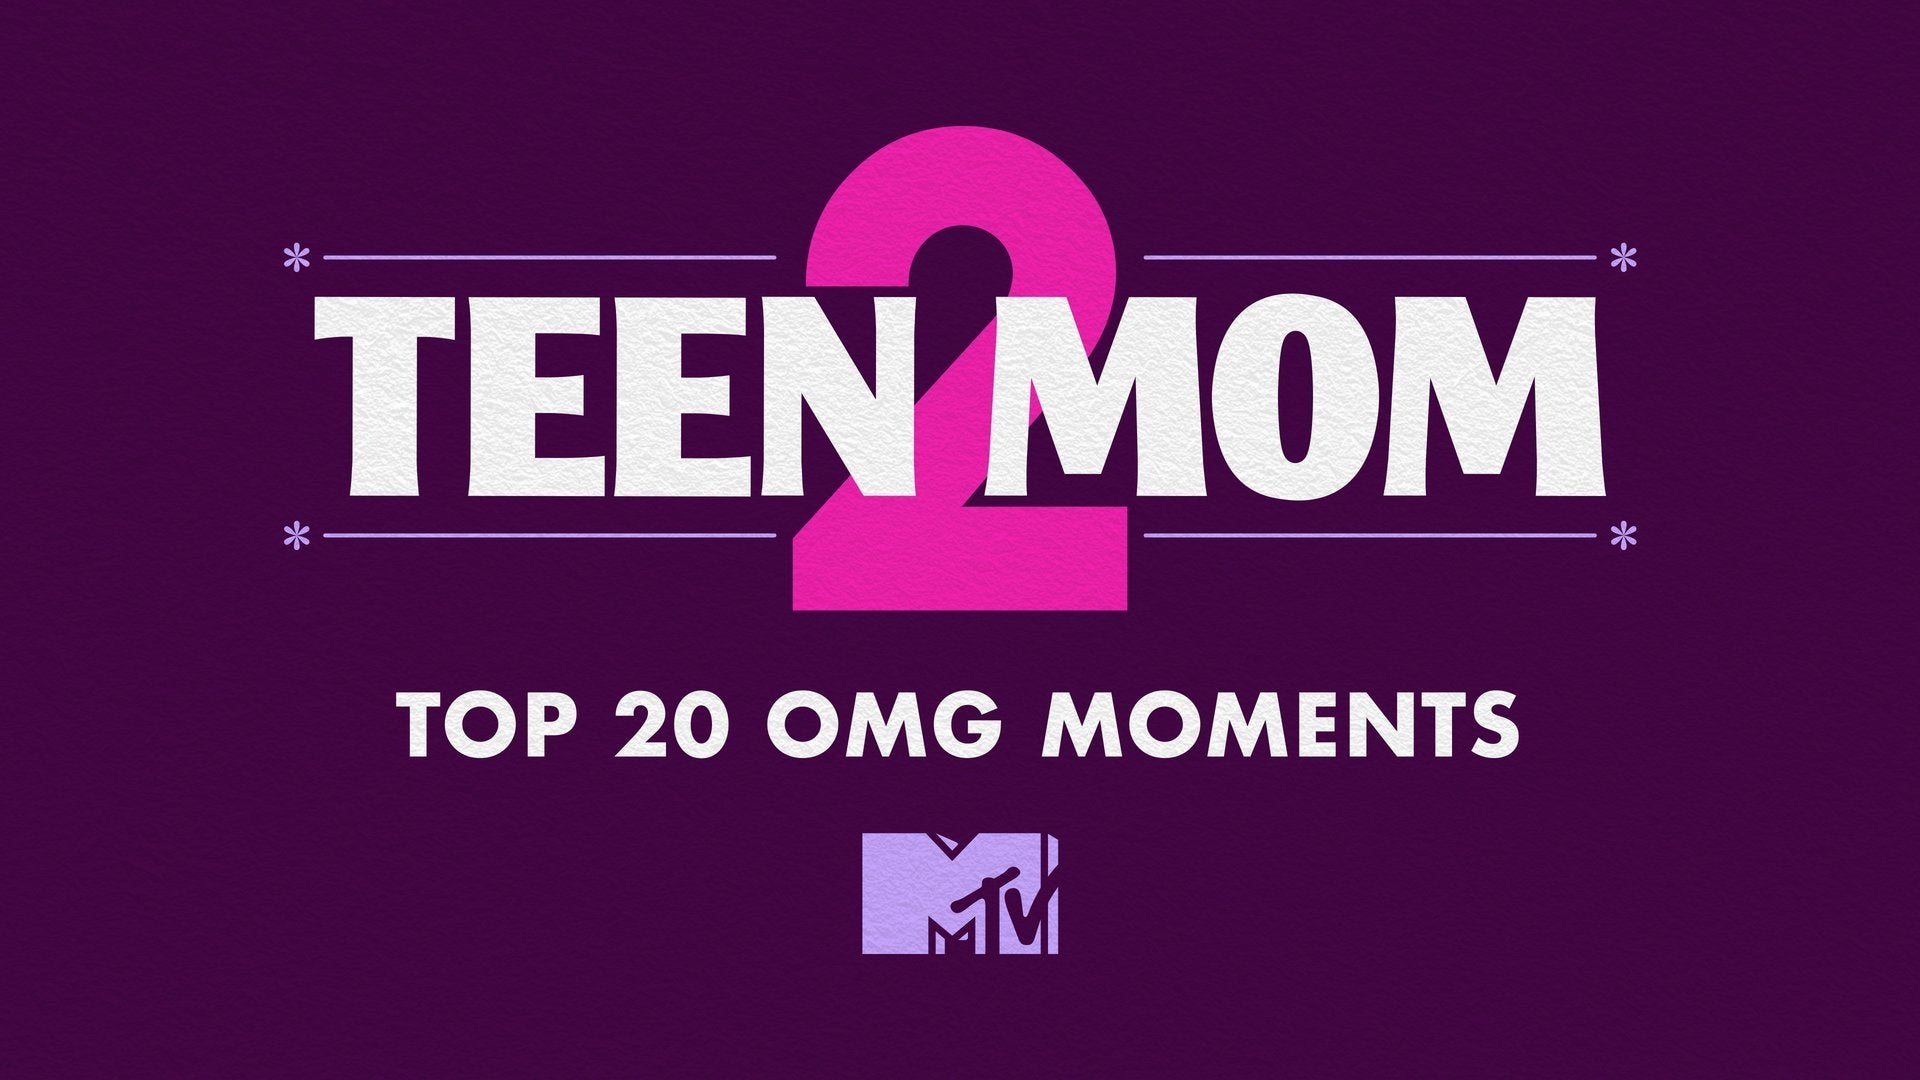 Teen Mom 2: Top 20 OMG Moments